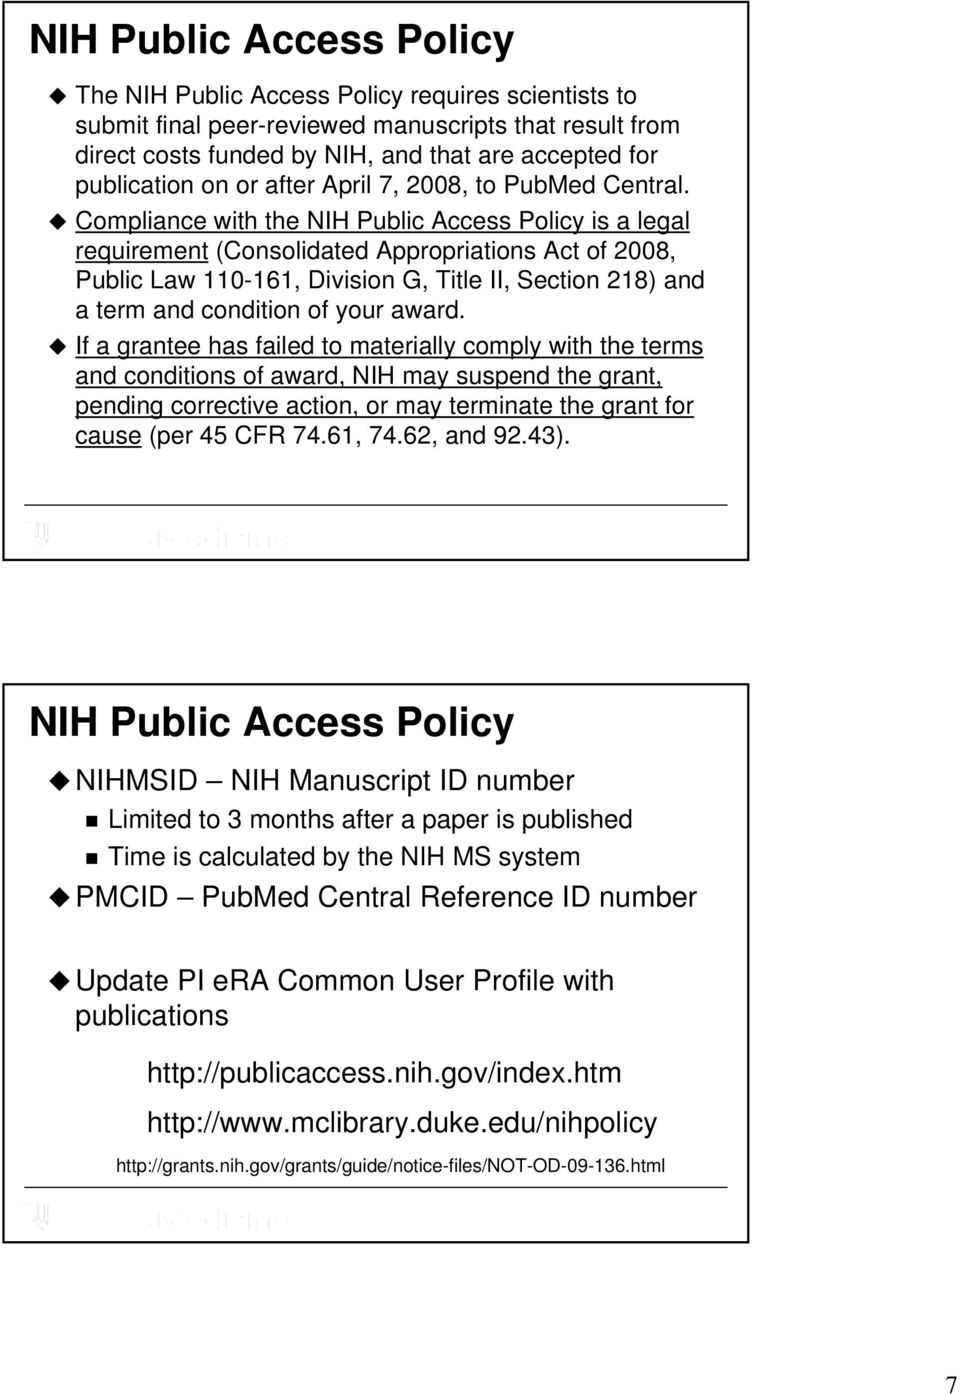 Compliance with the NIH Public Access Policy is a legal requirement (Consolidated Appropriations Act of 2008, Public Law 110-161, Division G, Title II, Section 218) and a term and condition of your